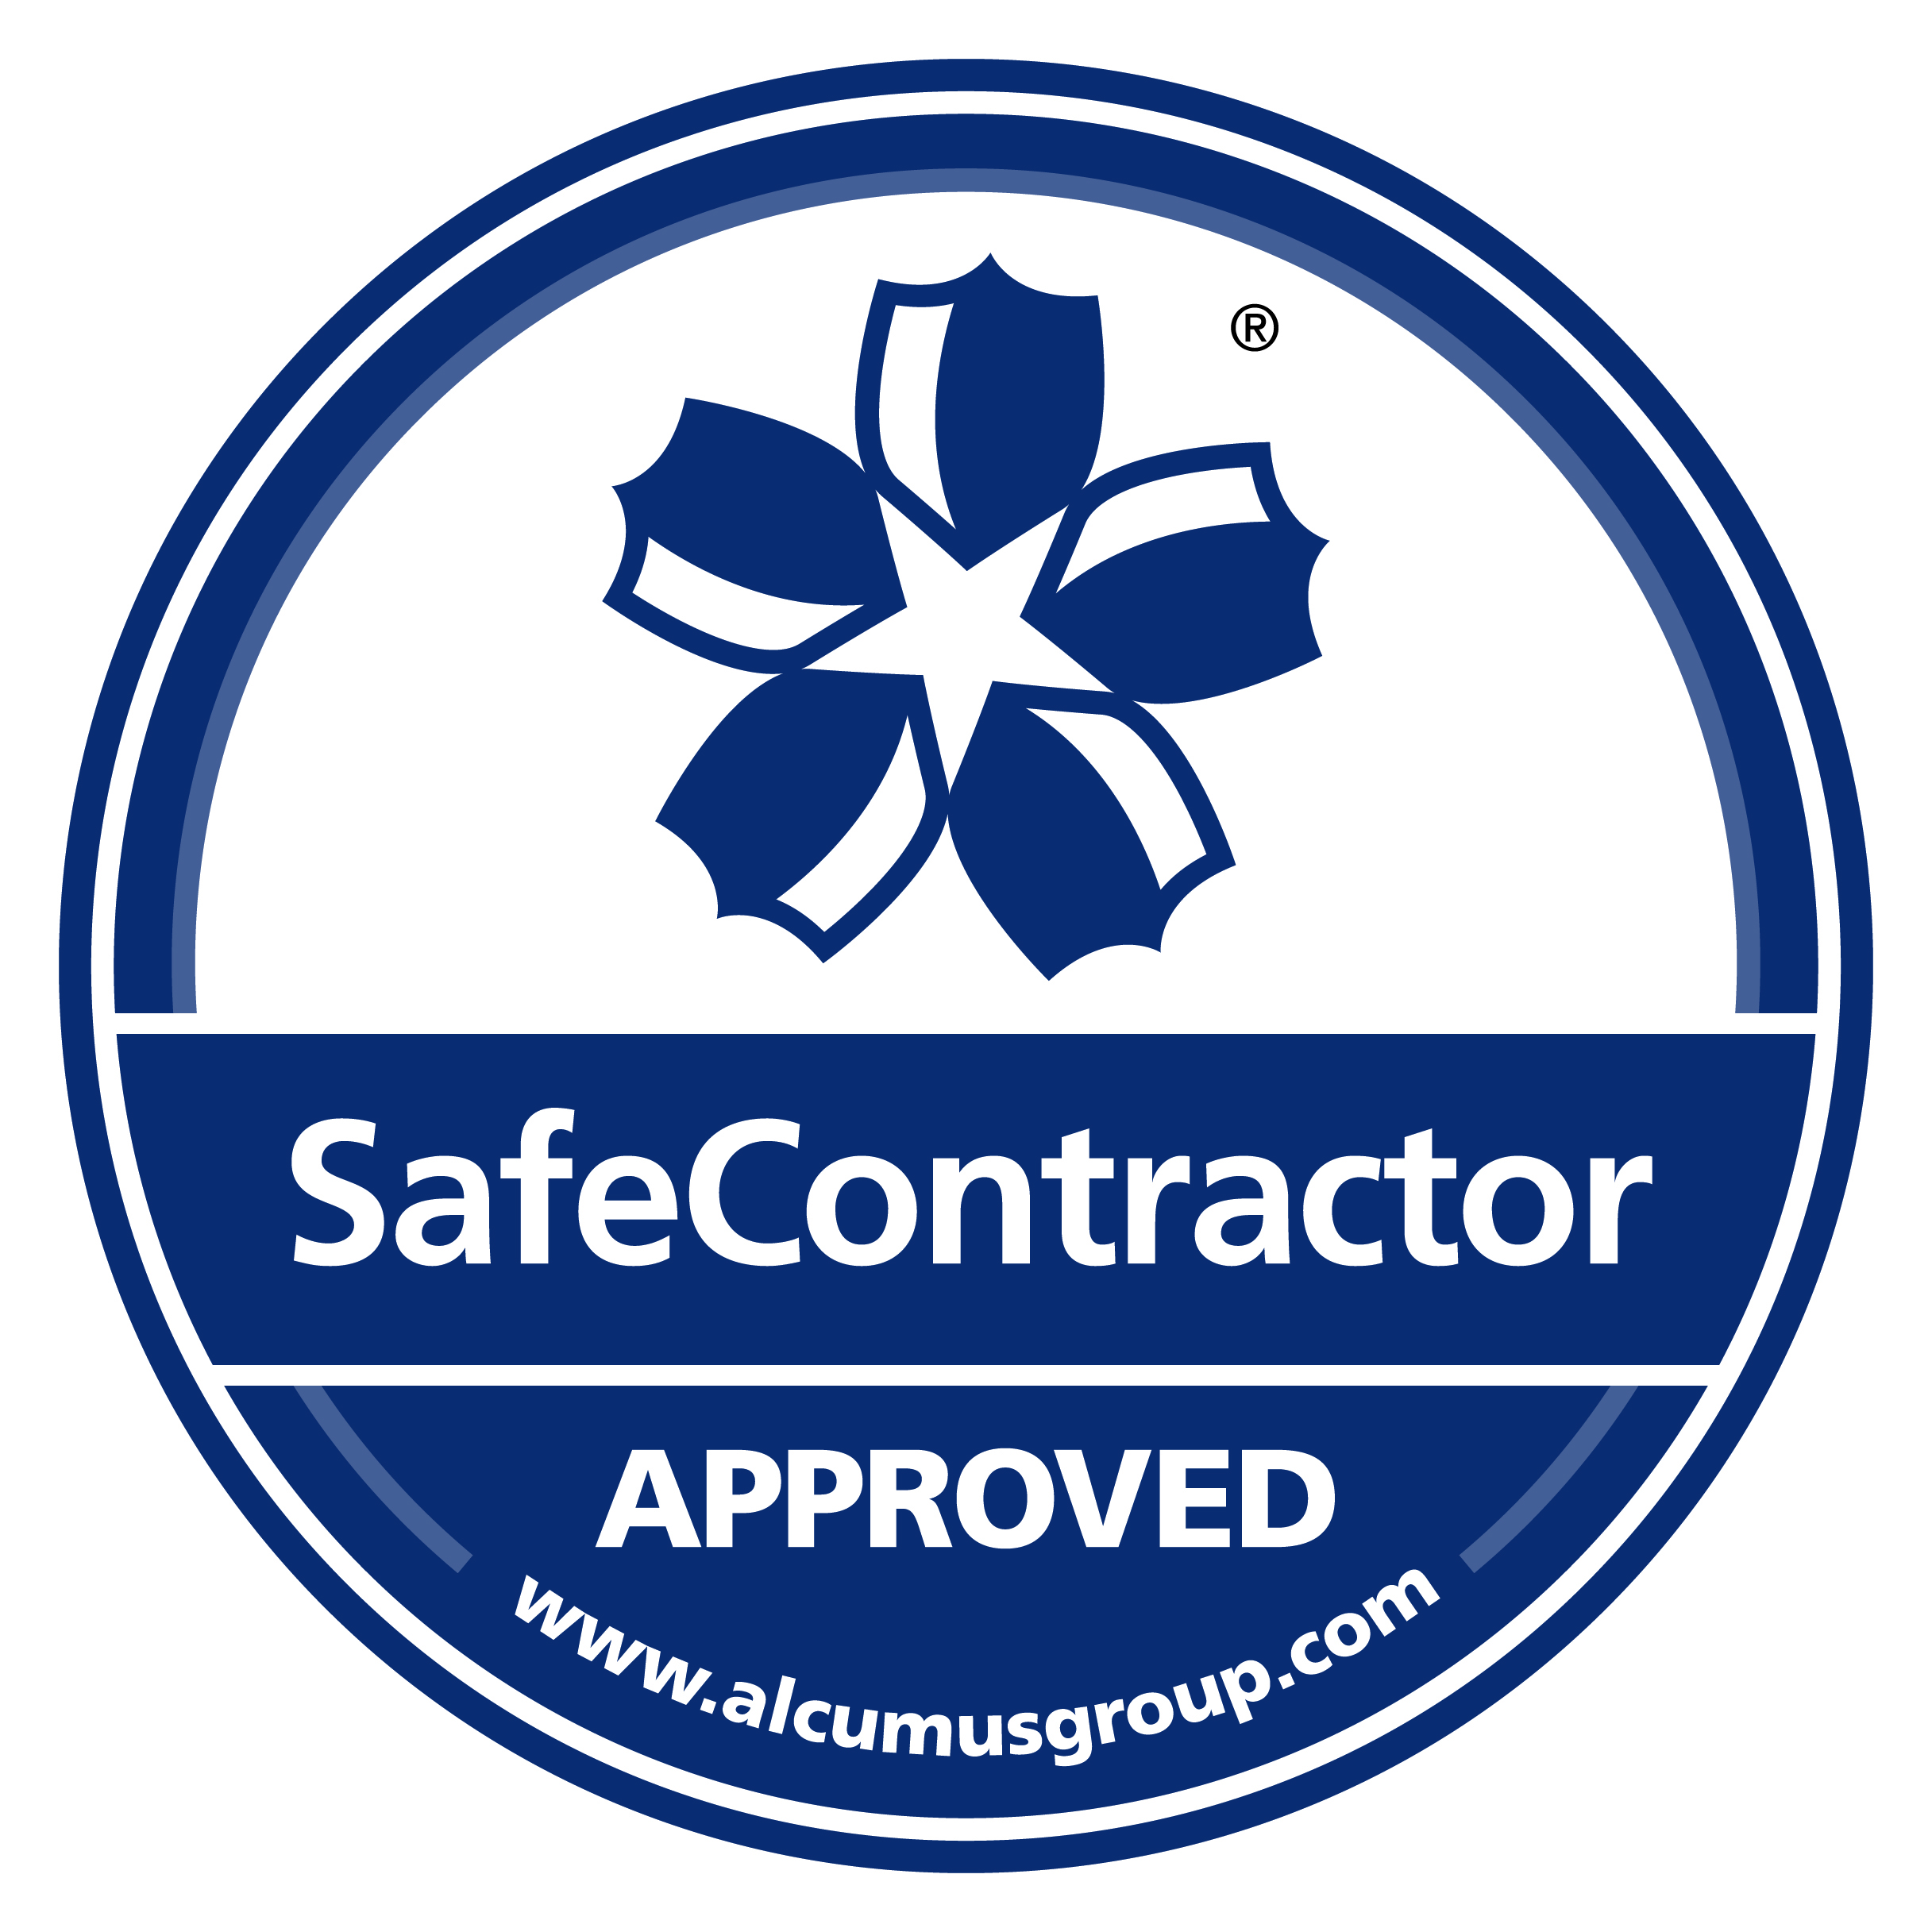 Active awarded SafeContractor status for the 9th year running.